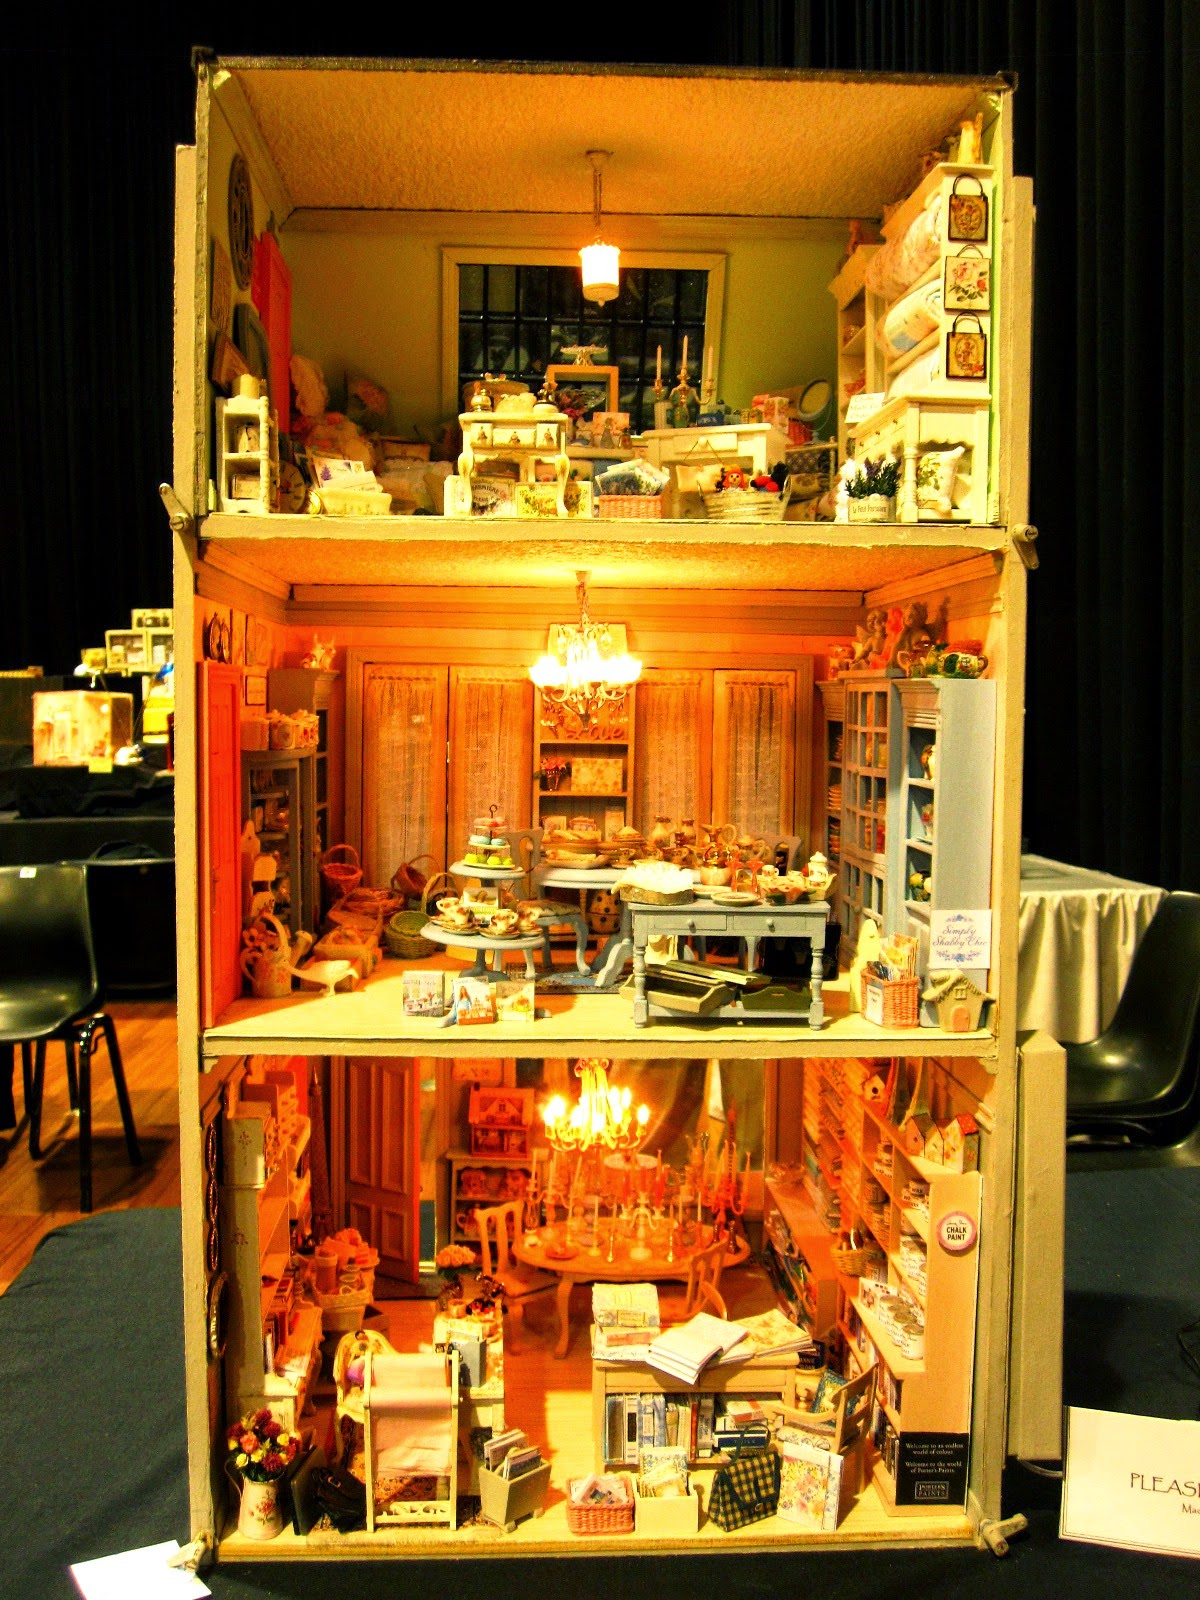 Back view of a modern miniature shabby chic shop, showing three levels of sales areas.